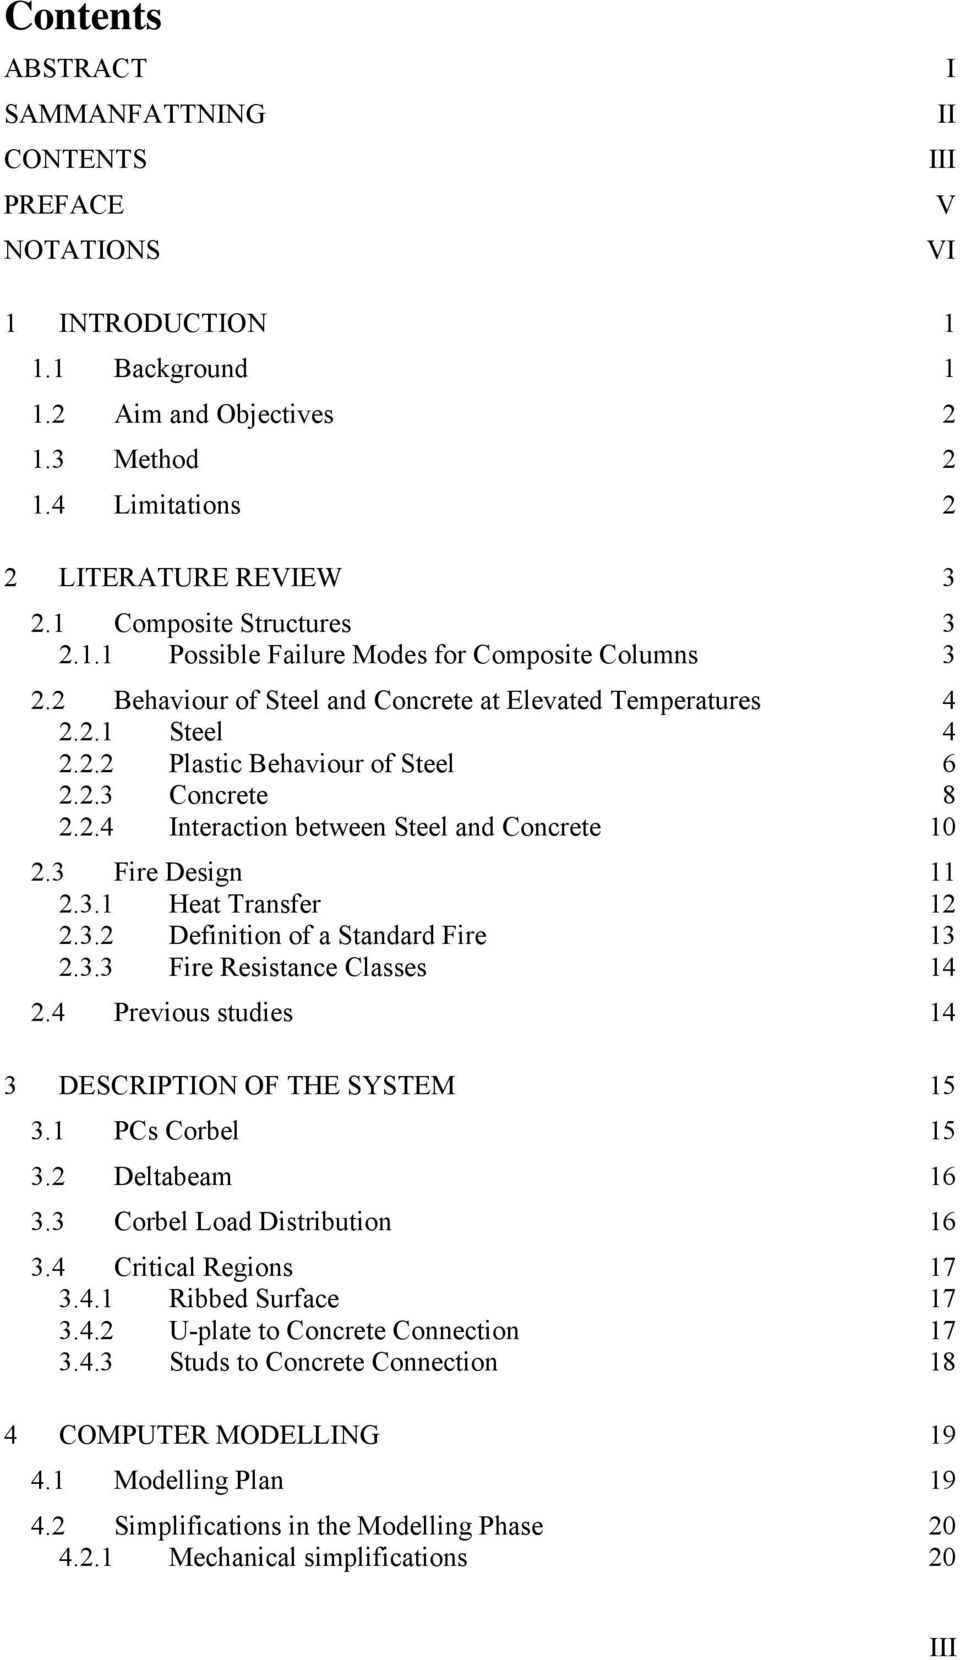 2.4 Interaction between Steel and Concrete 10 2.3 Fire Design 11 2.3.1 Heat Transfer 12 2.3.2 Definition of a Standard Fire 13 2.3.3 Fire Resistance Classes 14 2.